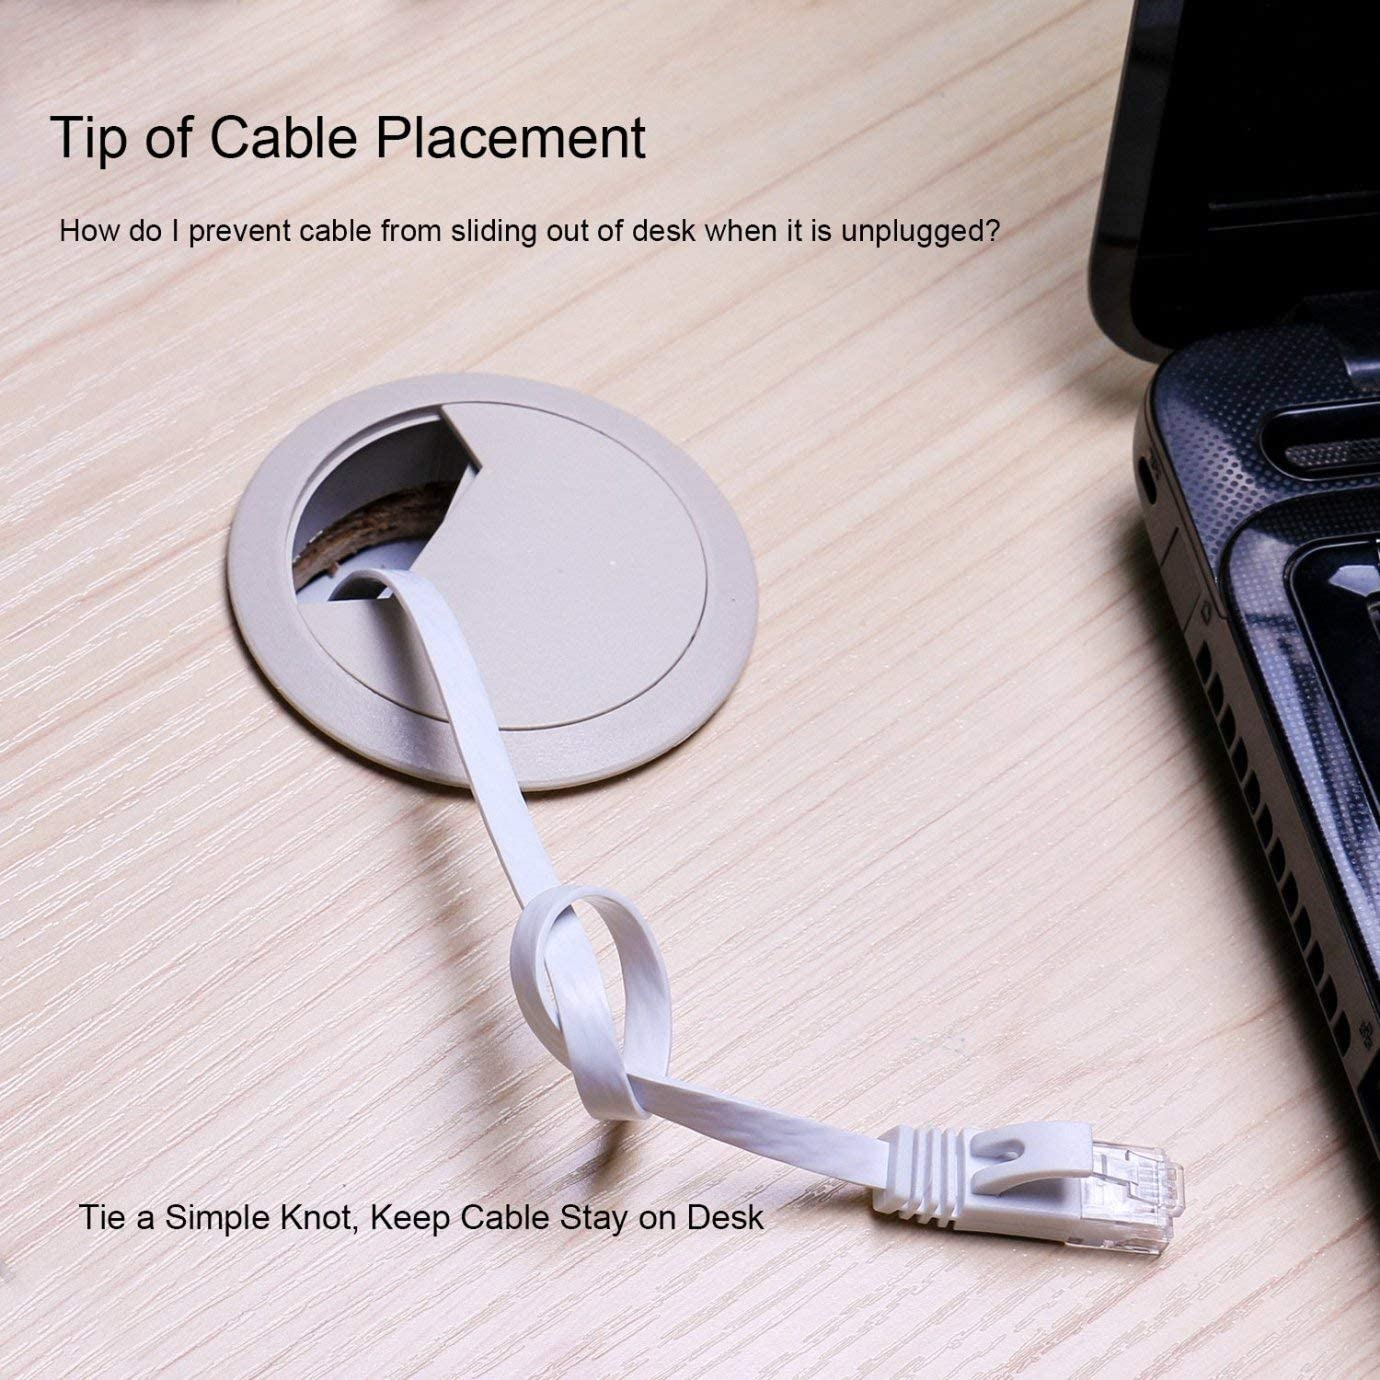 Flat Cat6 Ethernet Cable 200 Ft with Cable Clips comtelek cat 6 Ethernet Rj45 Patch Cable Thin Internet Computer Cable 60 Meters Slim Network Cable 200 Feet White